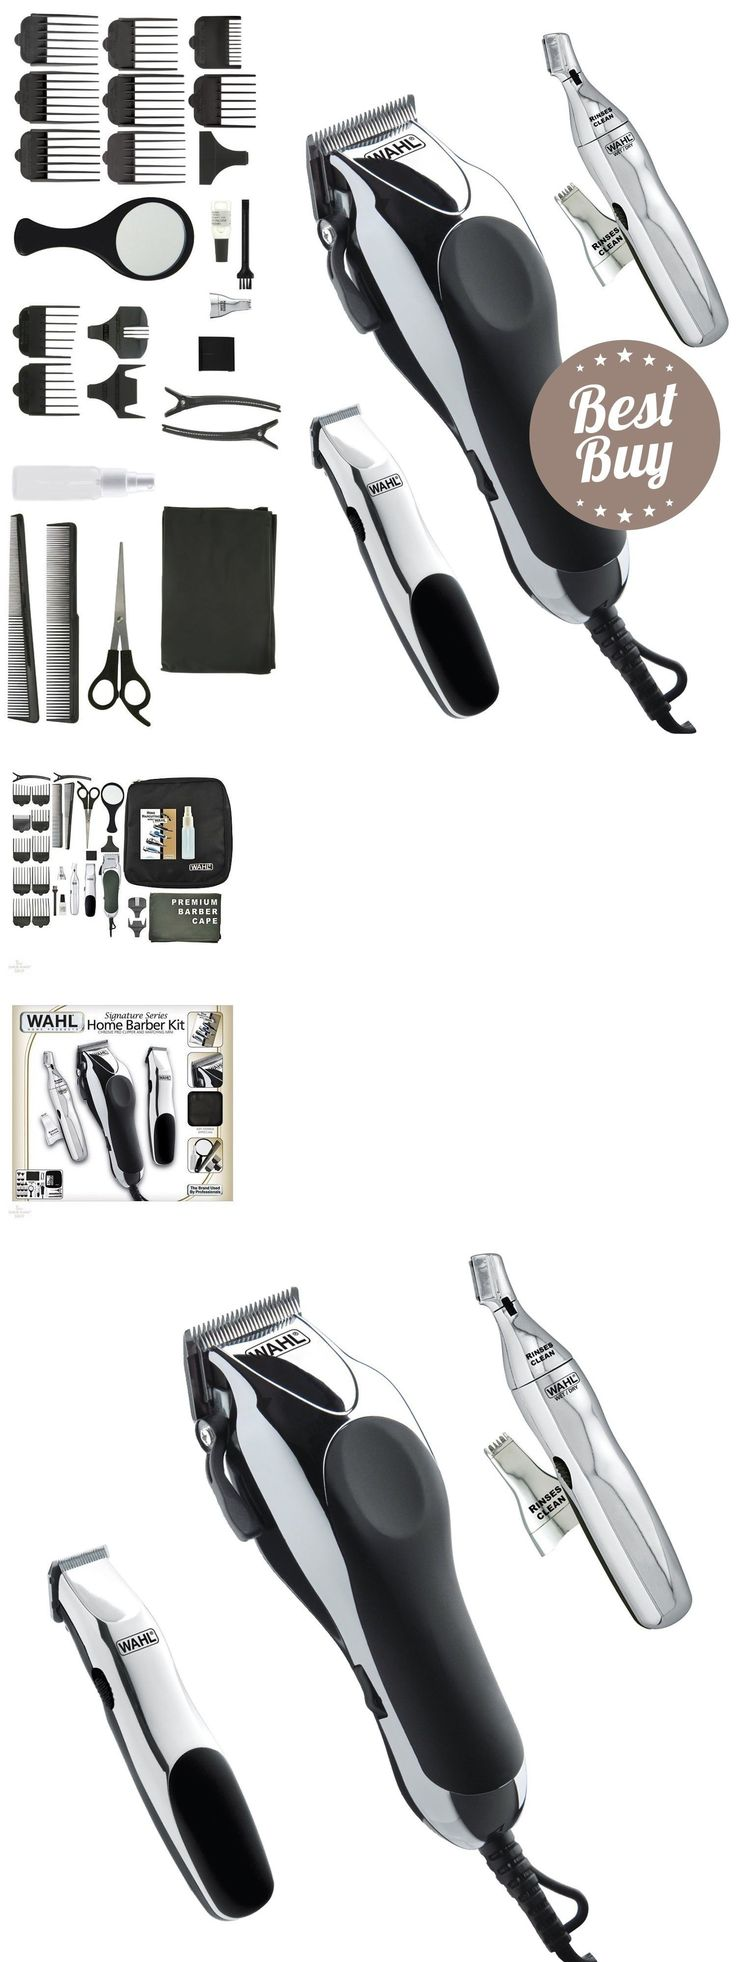 Shaving and Grooming Kits and Sets: Men Trimmer Barber Kit Machine Professional Haircutting Beard Shaver Clipper Set BUY IT NOW ONLY: $67.99